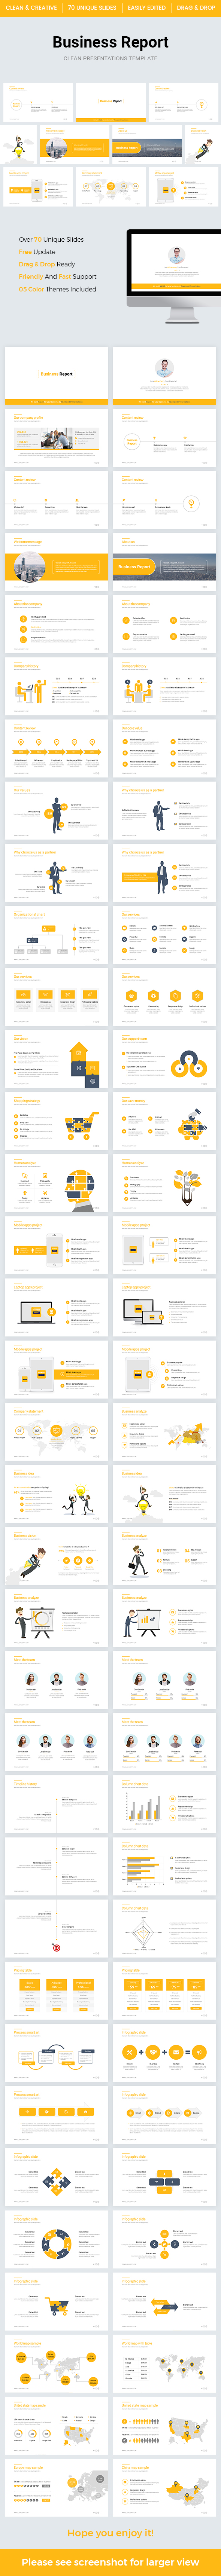 Business Report PowerPoint Template 2018 - Business PowerPoint Templates